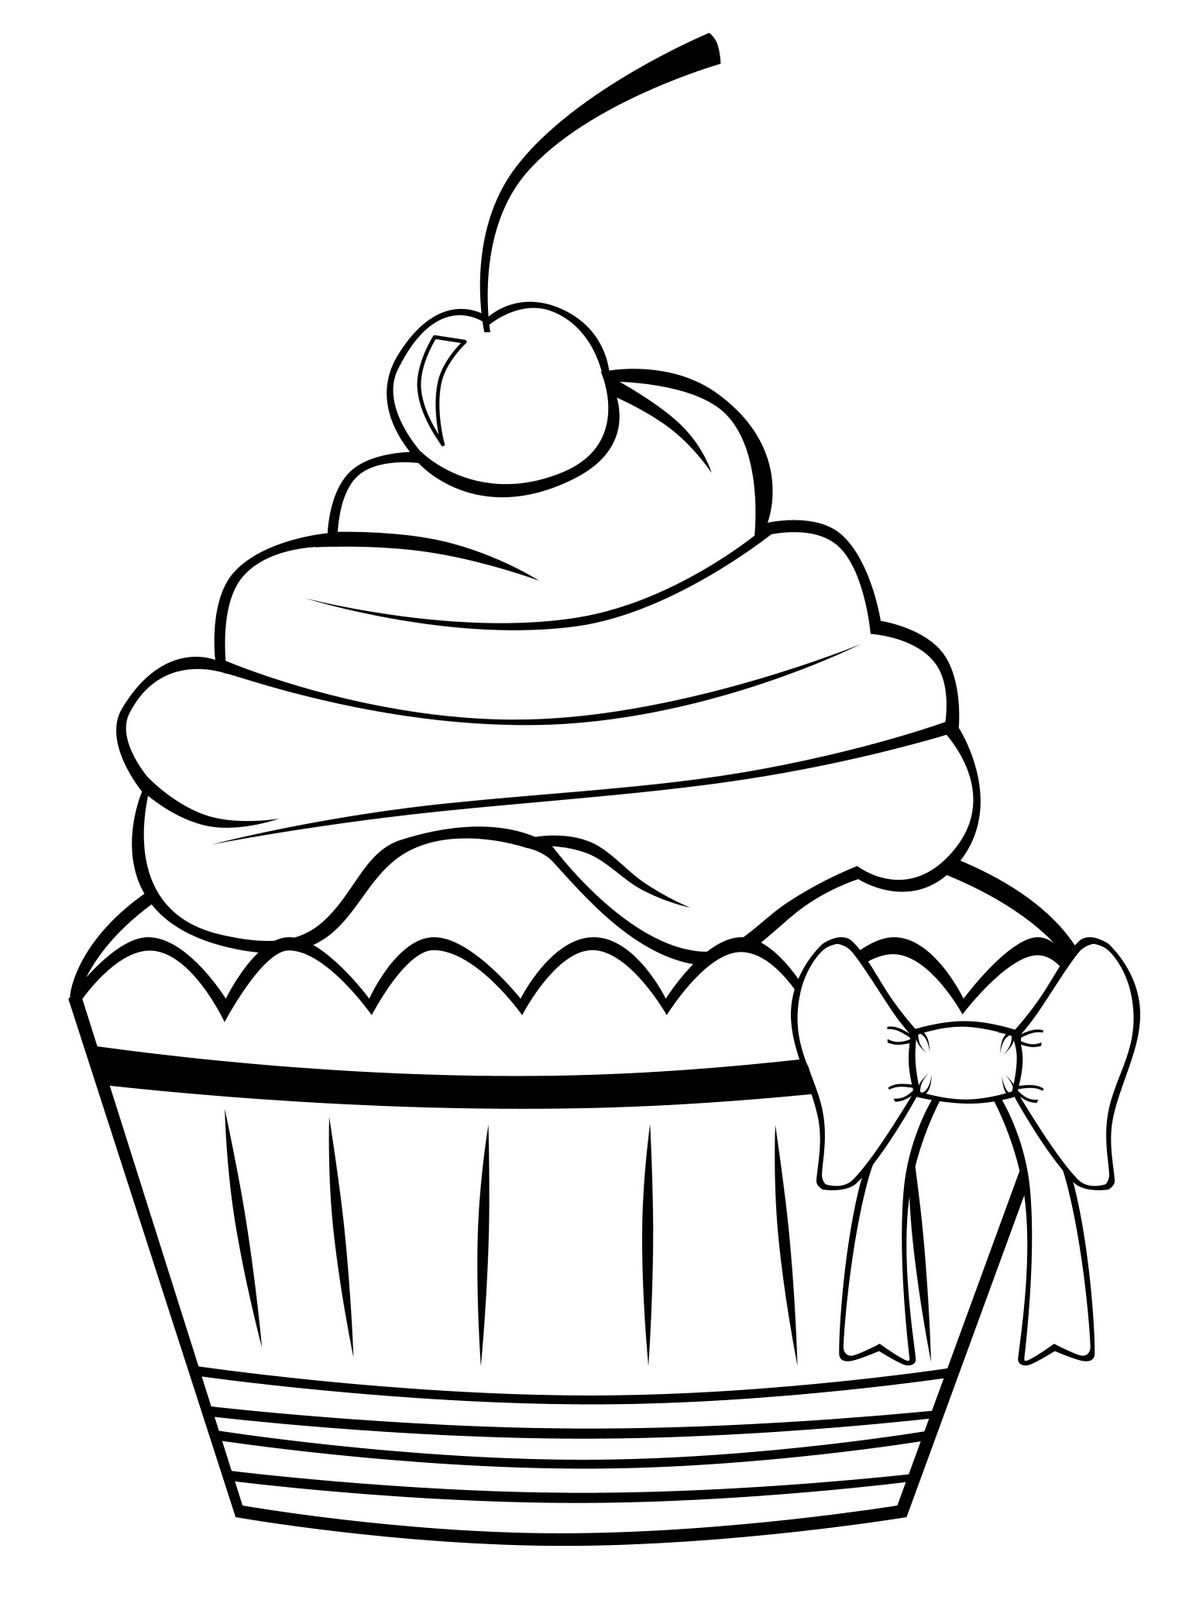 Free Printable Cupcake Coloring Pages For Kids Kleurplaten Digi